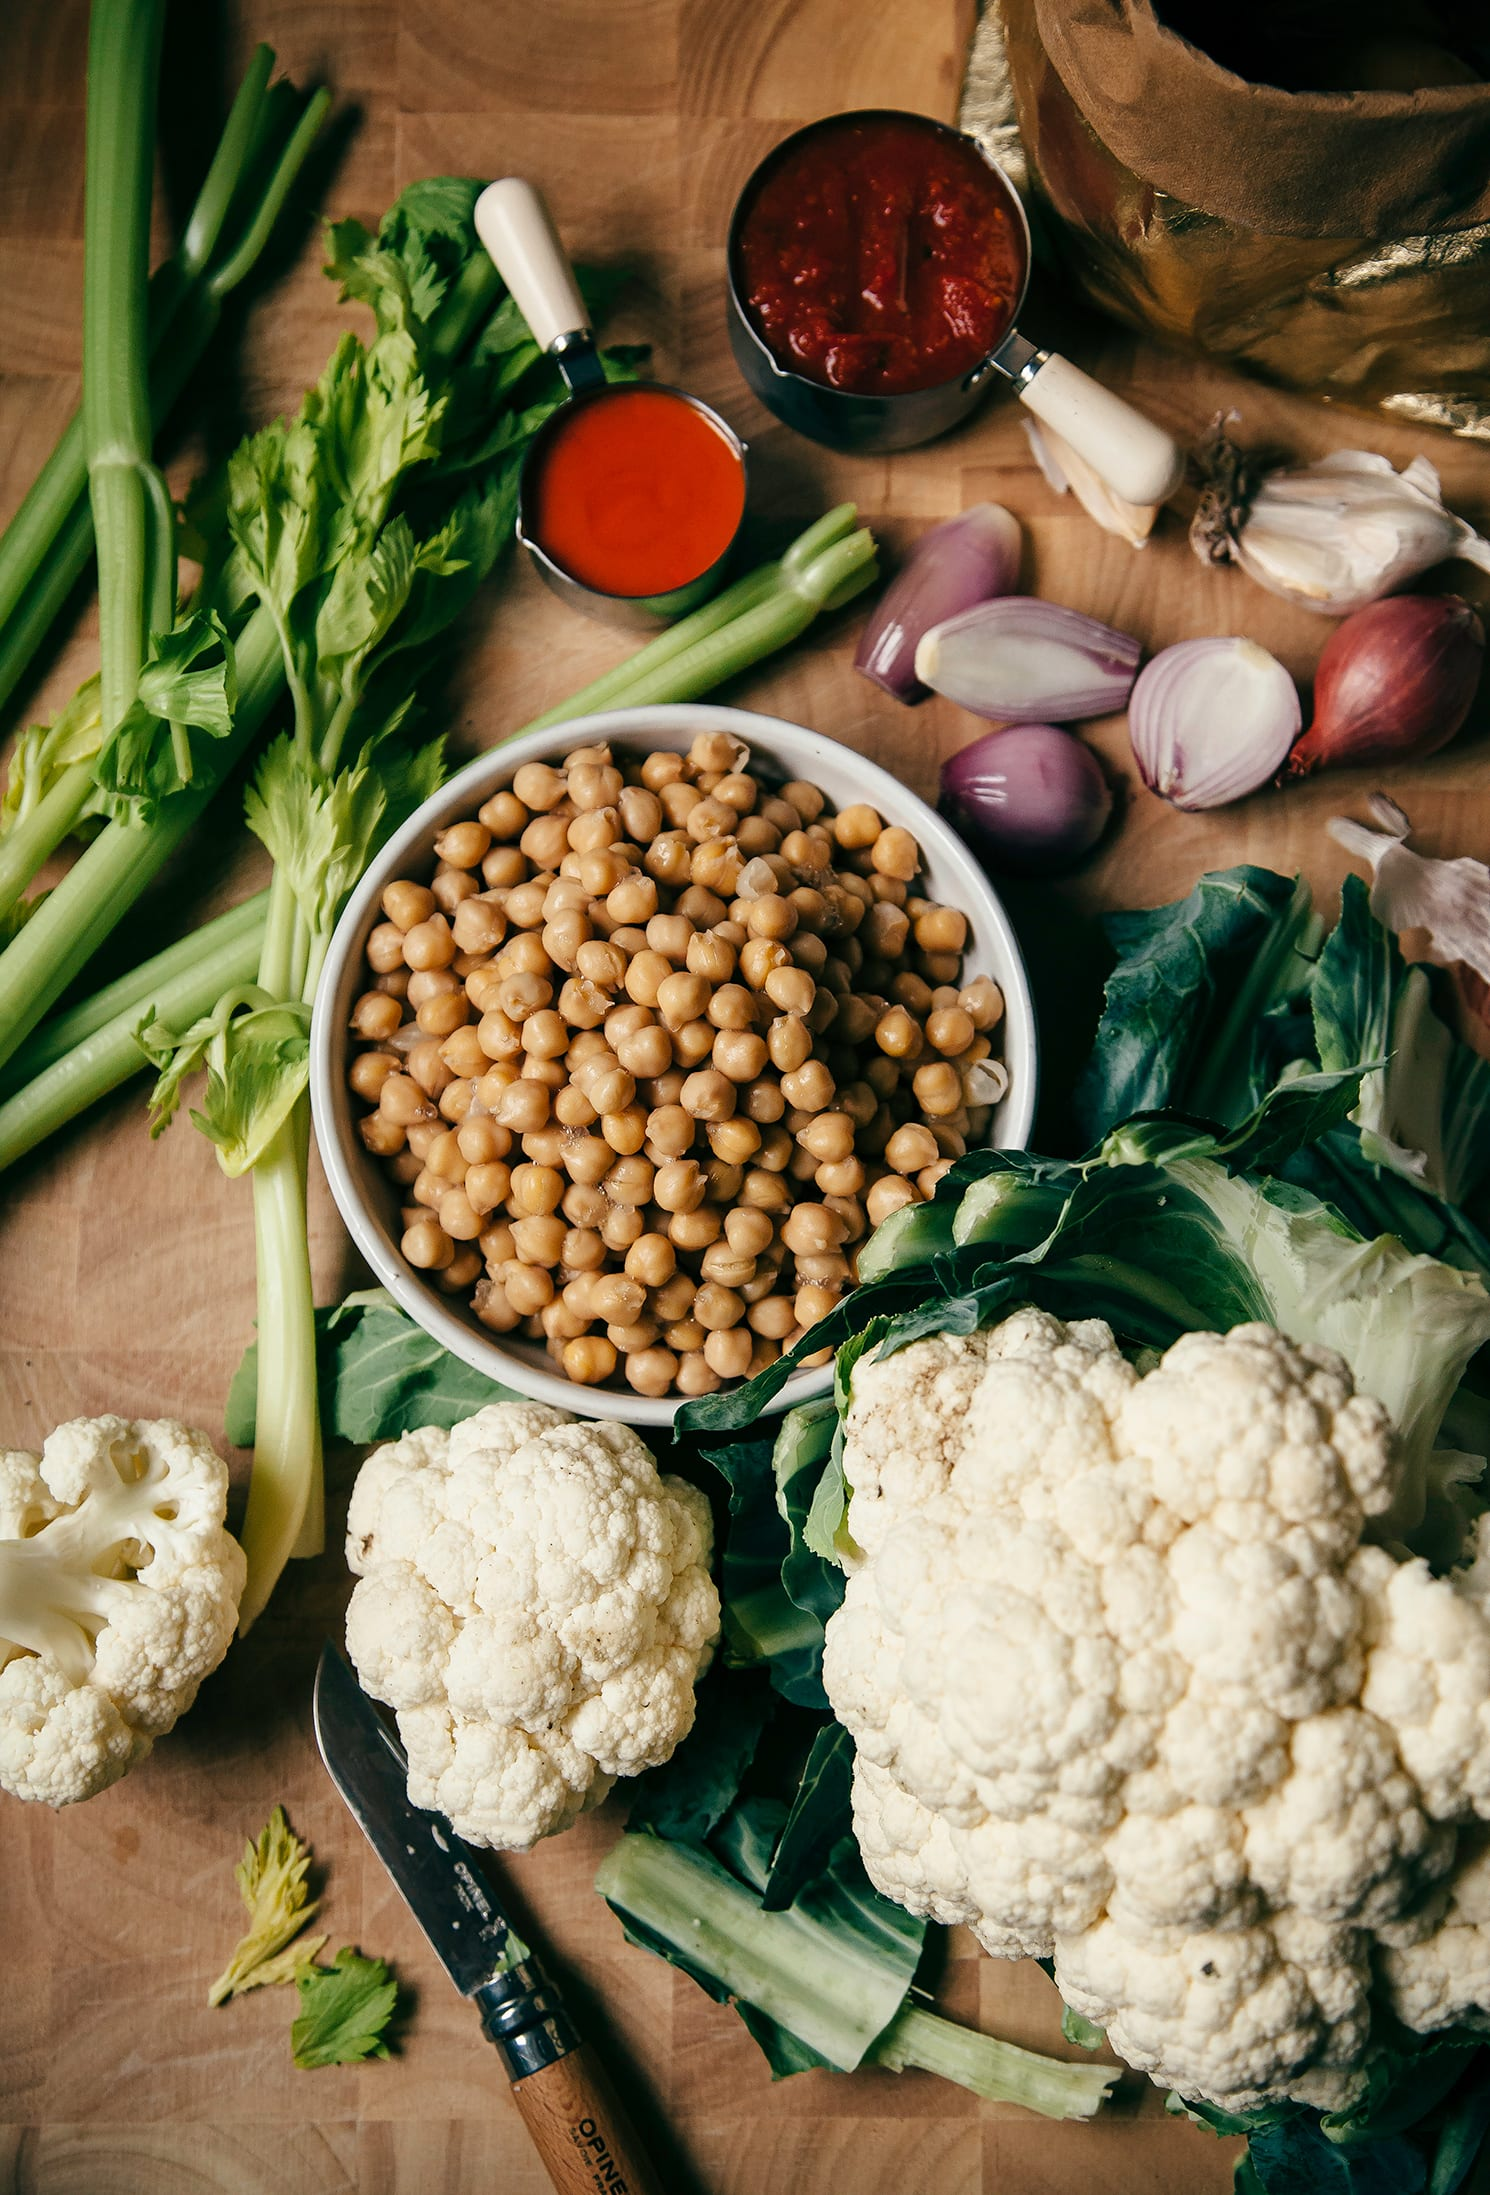 Overhead shot of ingredients for chickpea and cauliflower-stuffed baked potatoes.